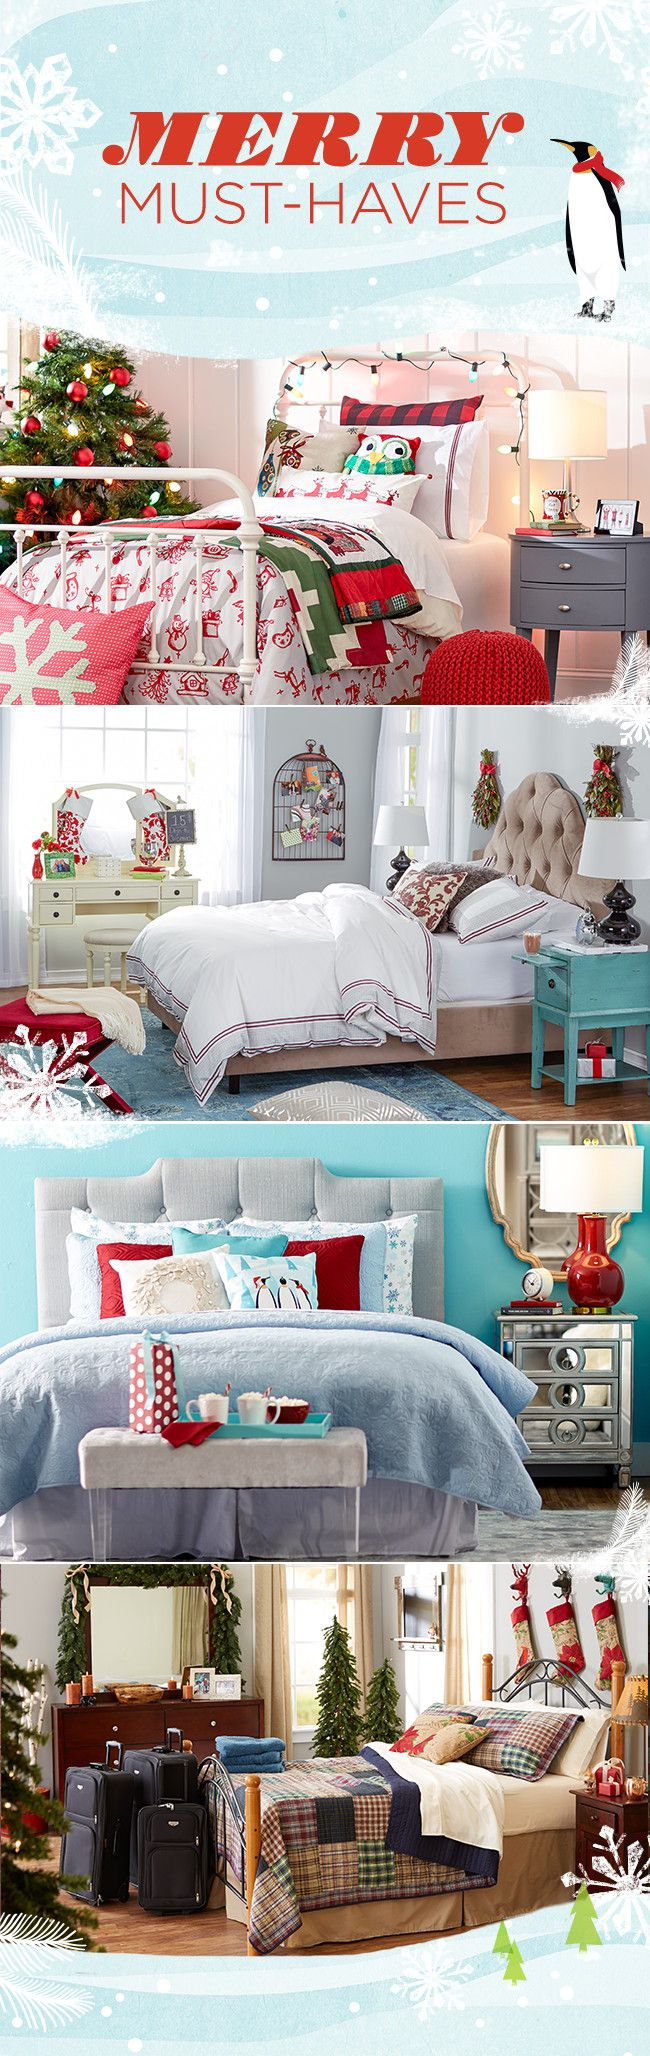 Help visitors feel at home with these fresh updates. If you don't have a spare room, pick up an air mattress or daybed to convert any area into a multipurpose sleep space. Visit Wayfair and sign up today to get access to exclusive deals everyday up to 70% off. Free shipping on all orders over $49. Merry Markdowns Christmas sale ends 12/31/15.